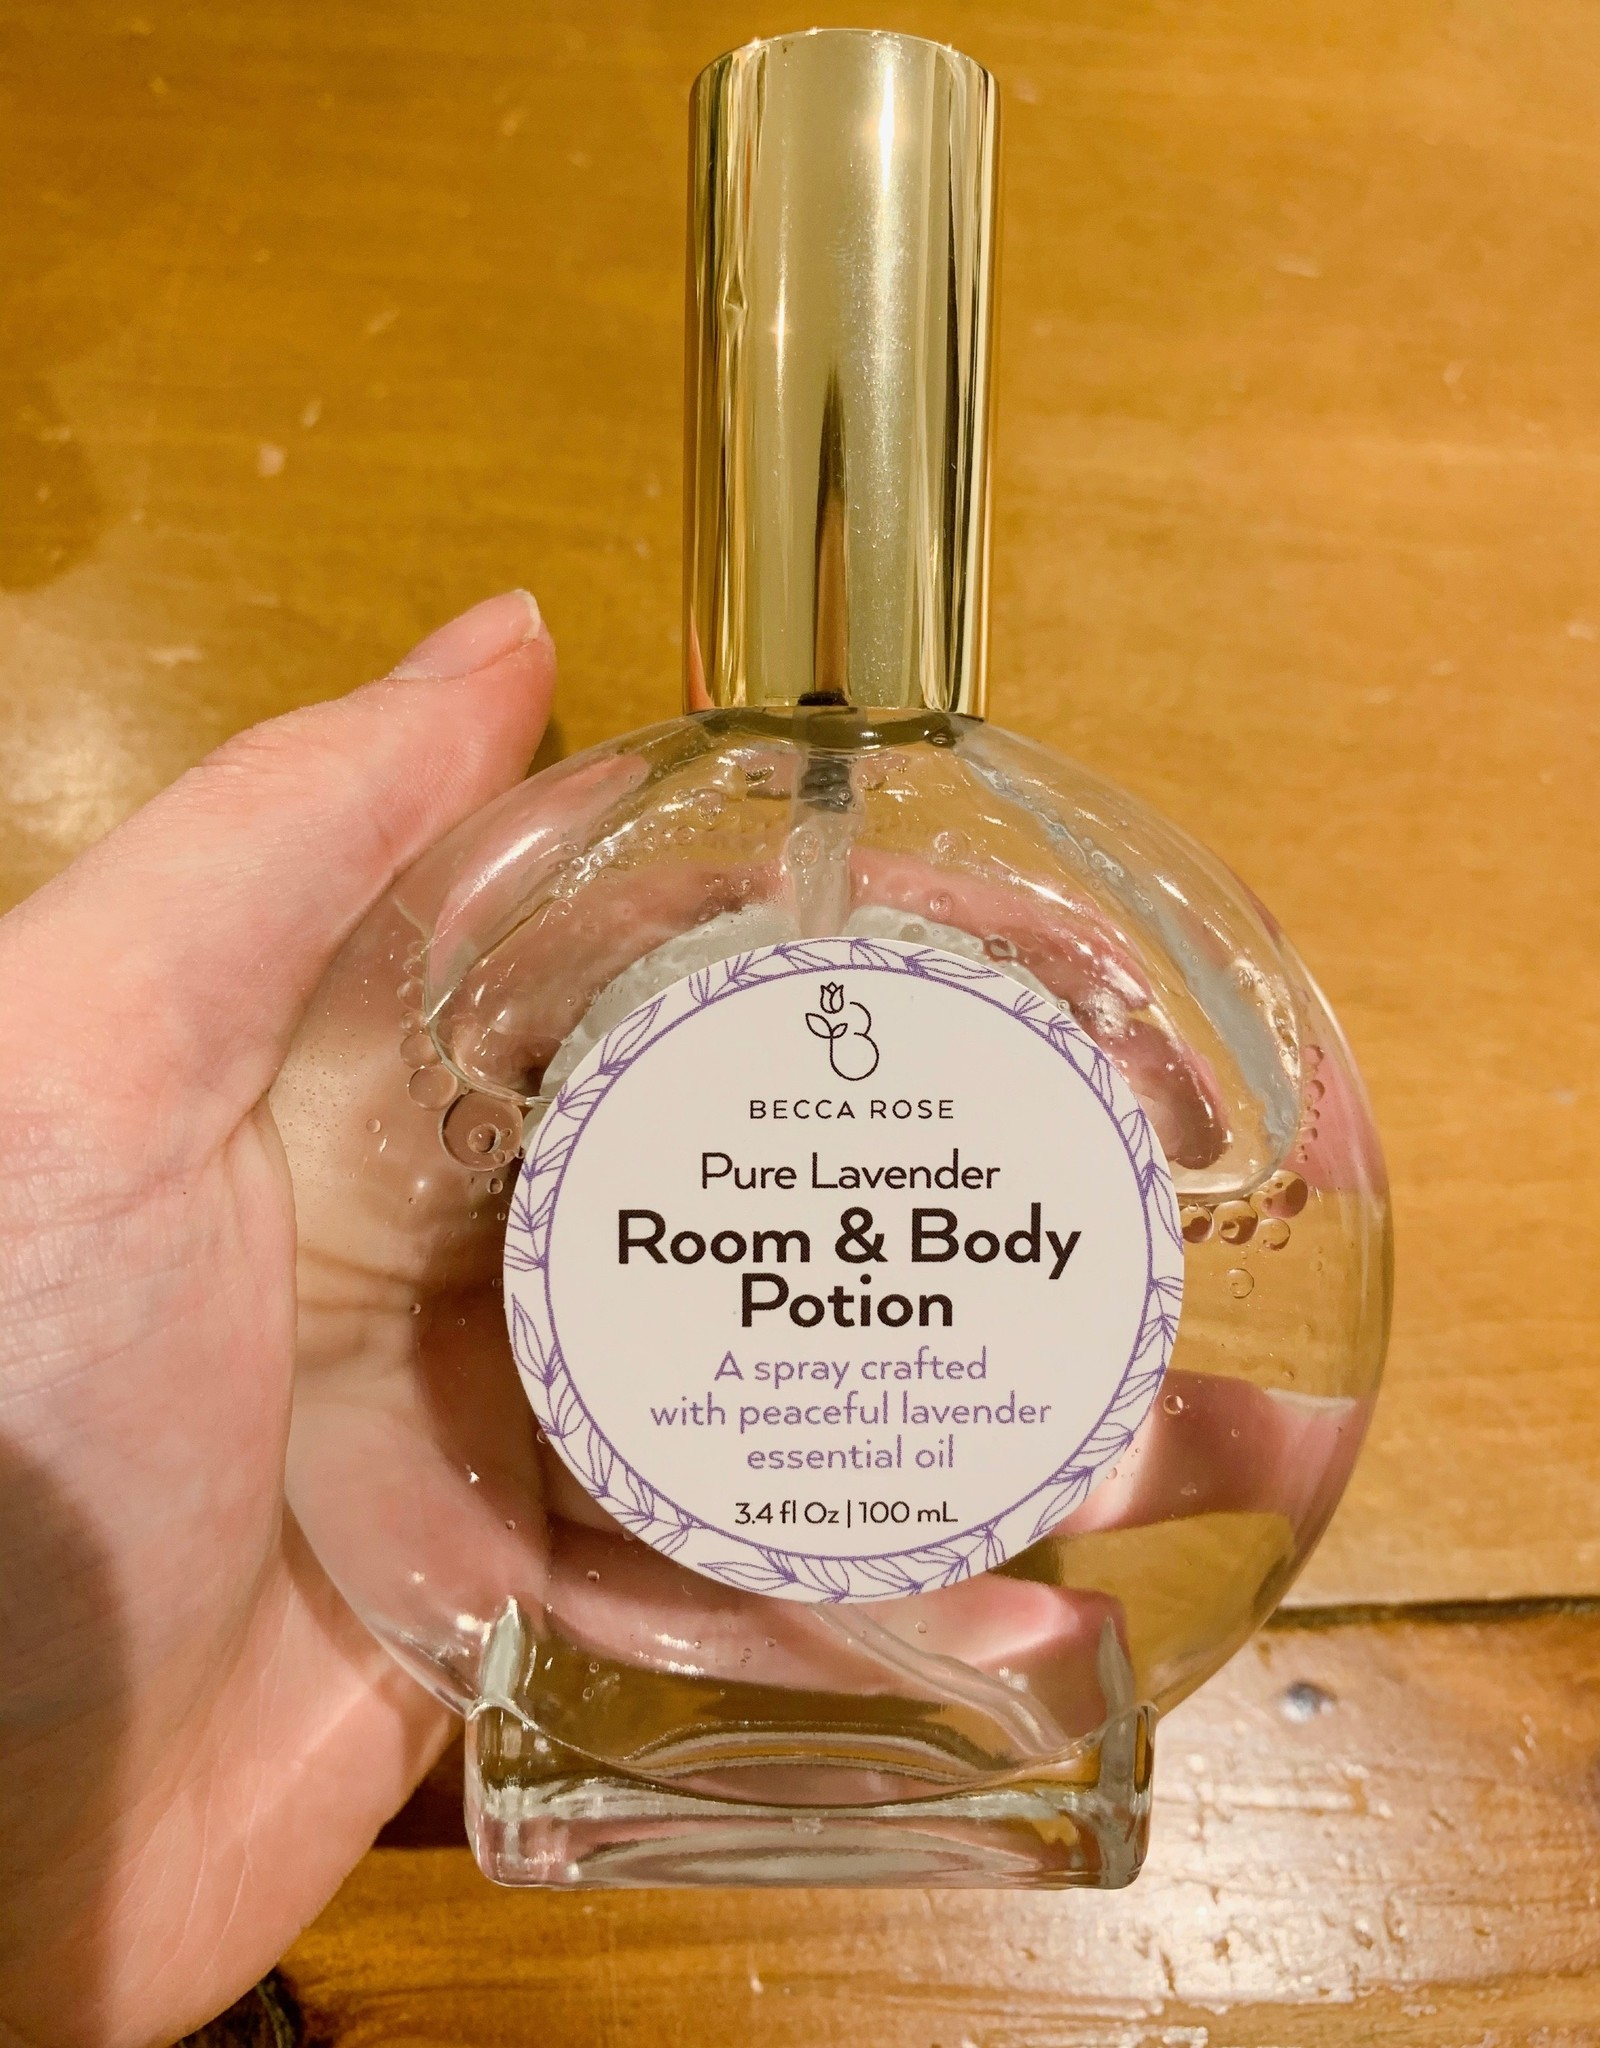 Becca Rose Room & Body Potion: Pure Lavender